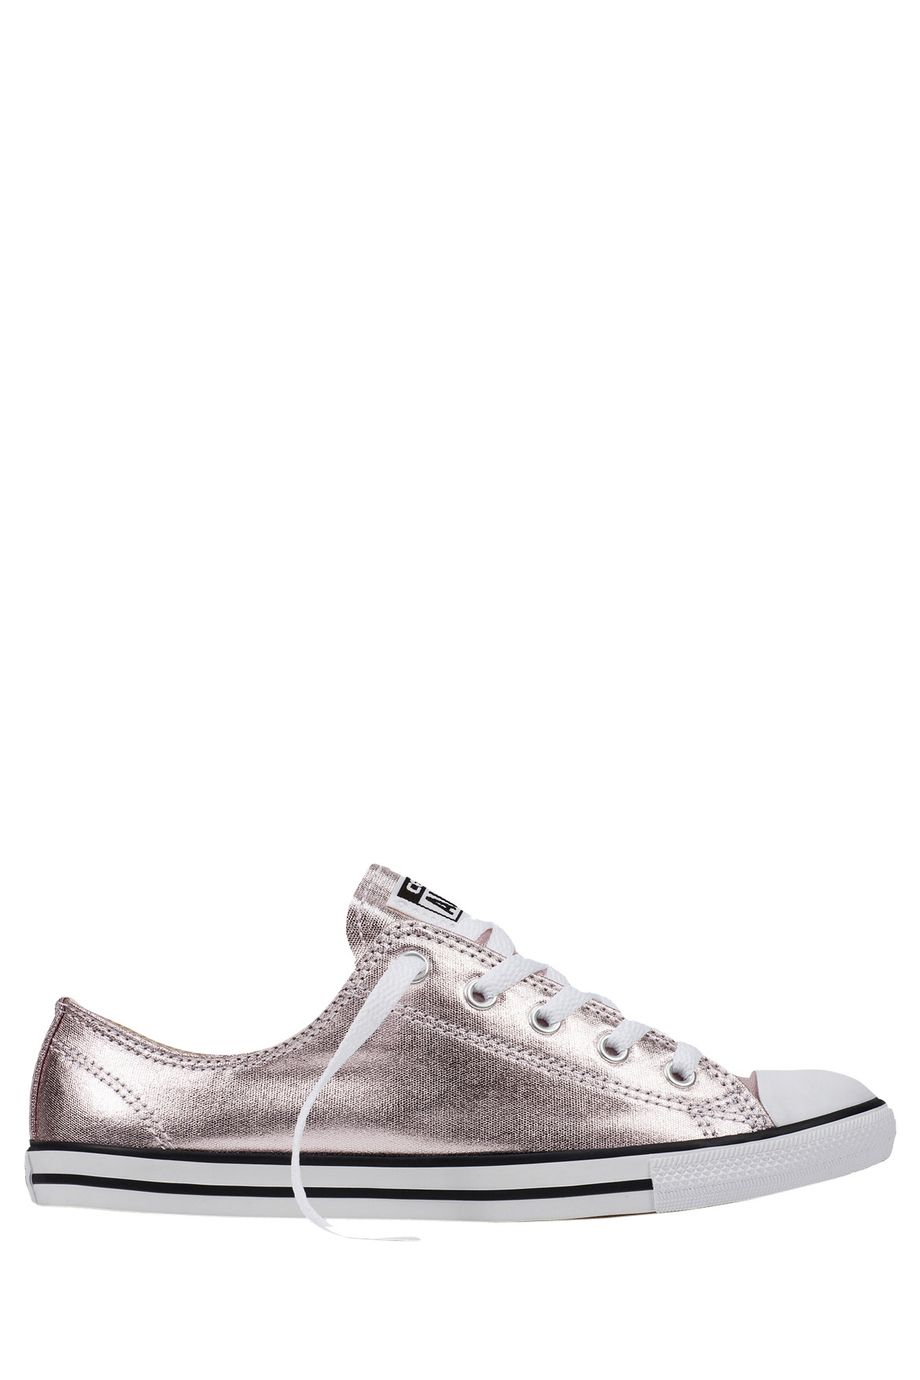 converse chuck taylor all star metallic canvas